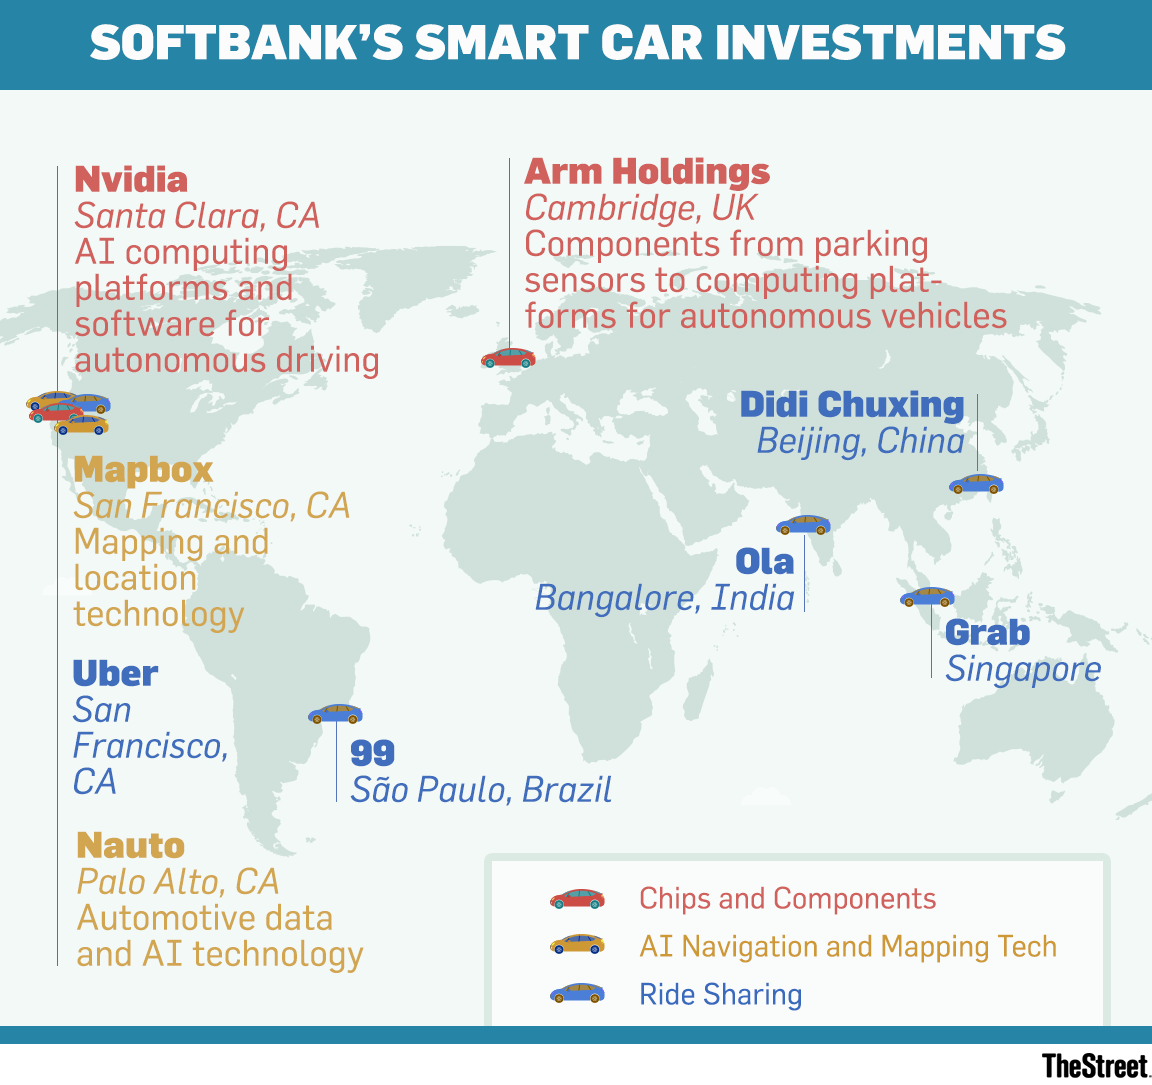 Softbanks investment in uber puts spotlight on huge auto industry the investments are varied but they address trends in the development of autonomous cars softbanks auto tech investment portfolio is very diversified buycottarizona